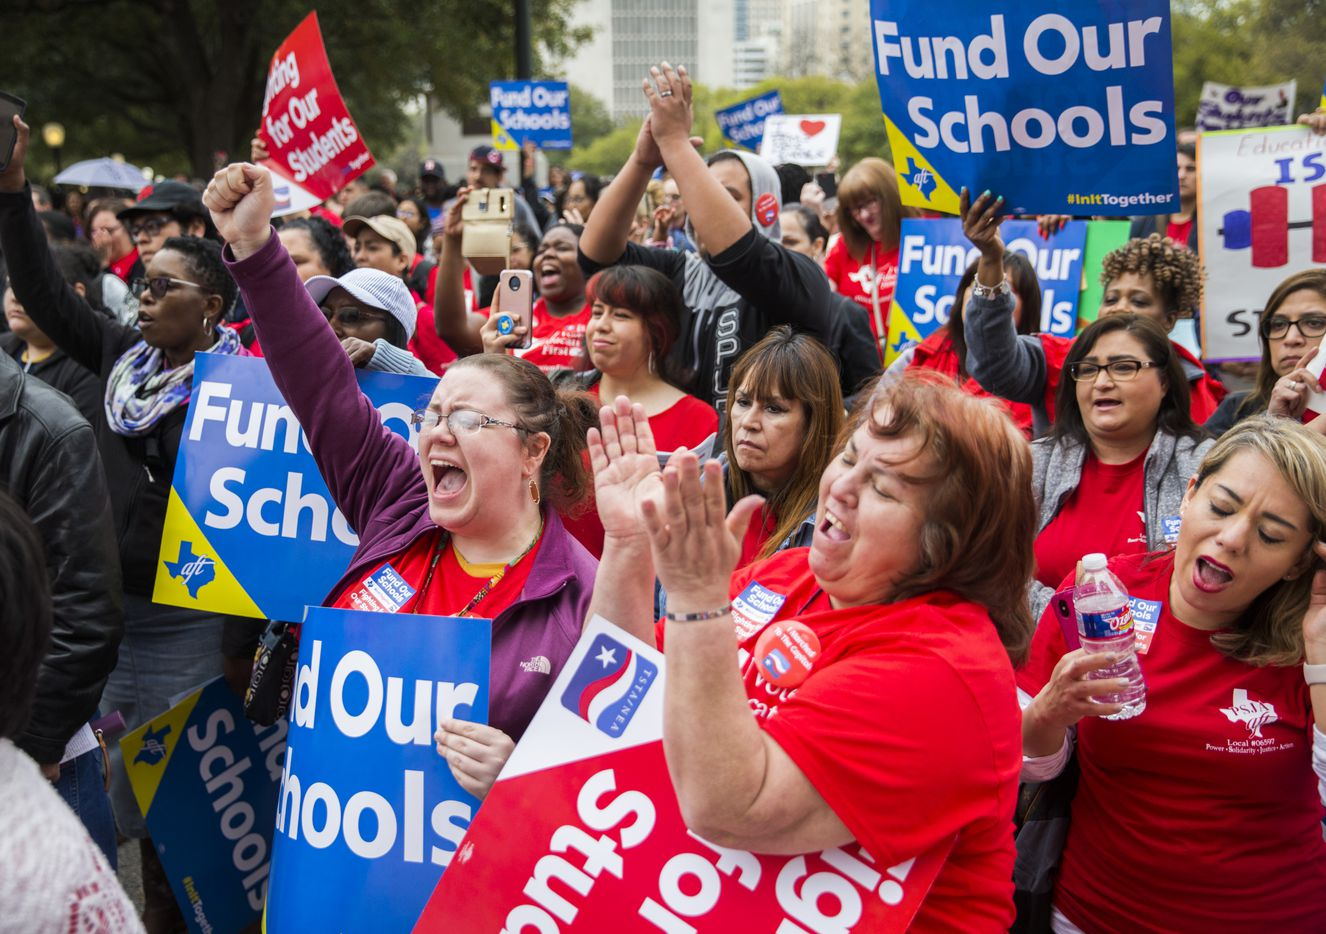 Lindsey Mayes (center left) and Virginia Garrobo (center right), both fourth grade teachers from Houston, cheer during the Texas Public Education Rally on Monday, March 11, 2019 at the Texas capitol in Austin. Teachers pushed for school finance reform and pay raises.